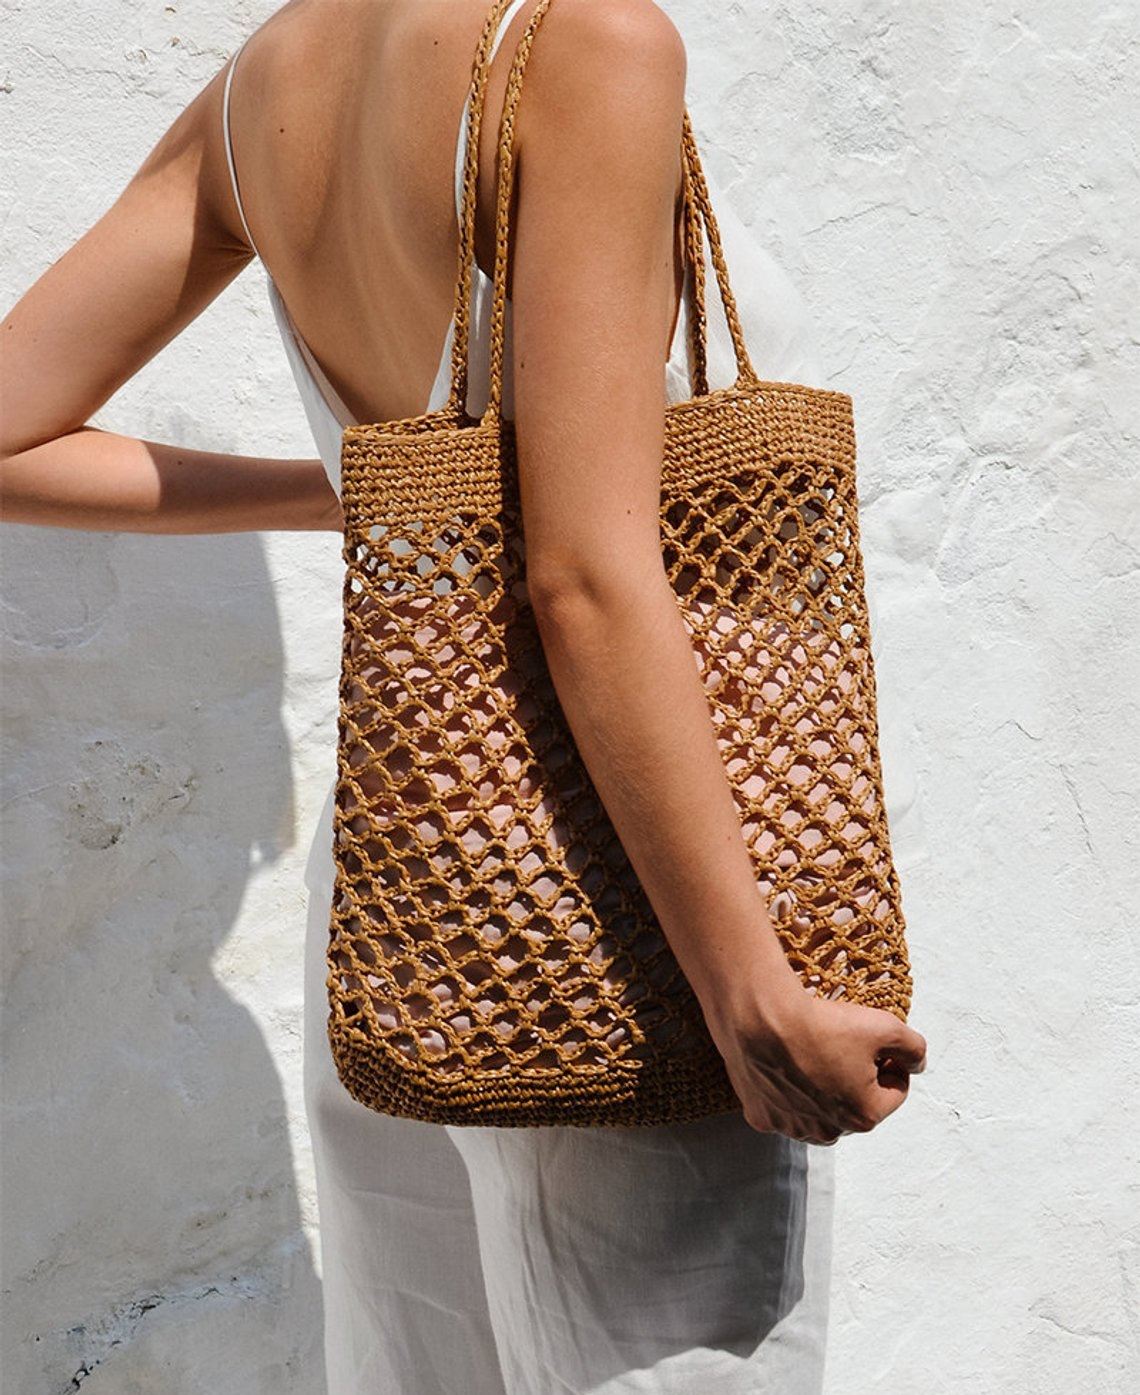 Raffia Net Bag in Tan By Plexida